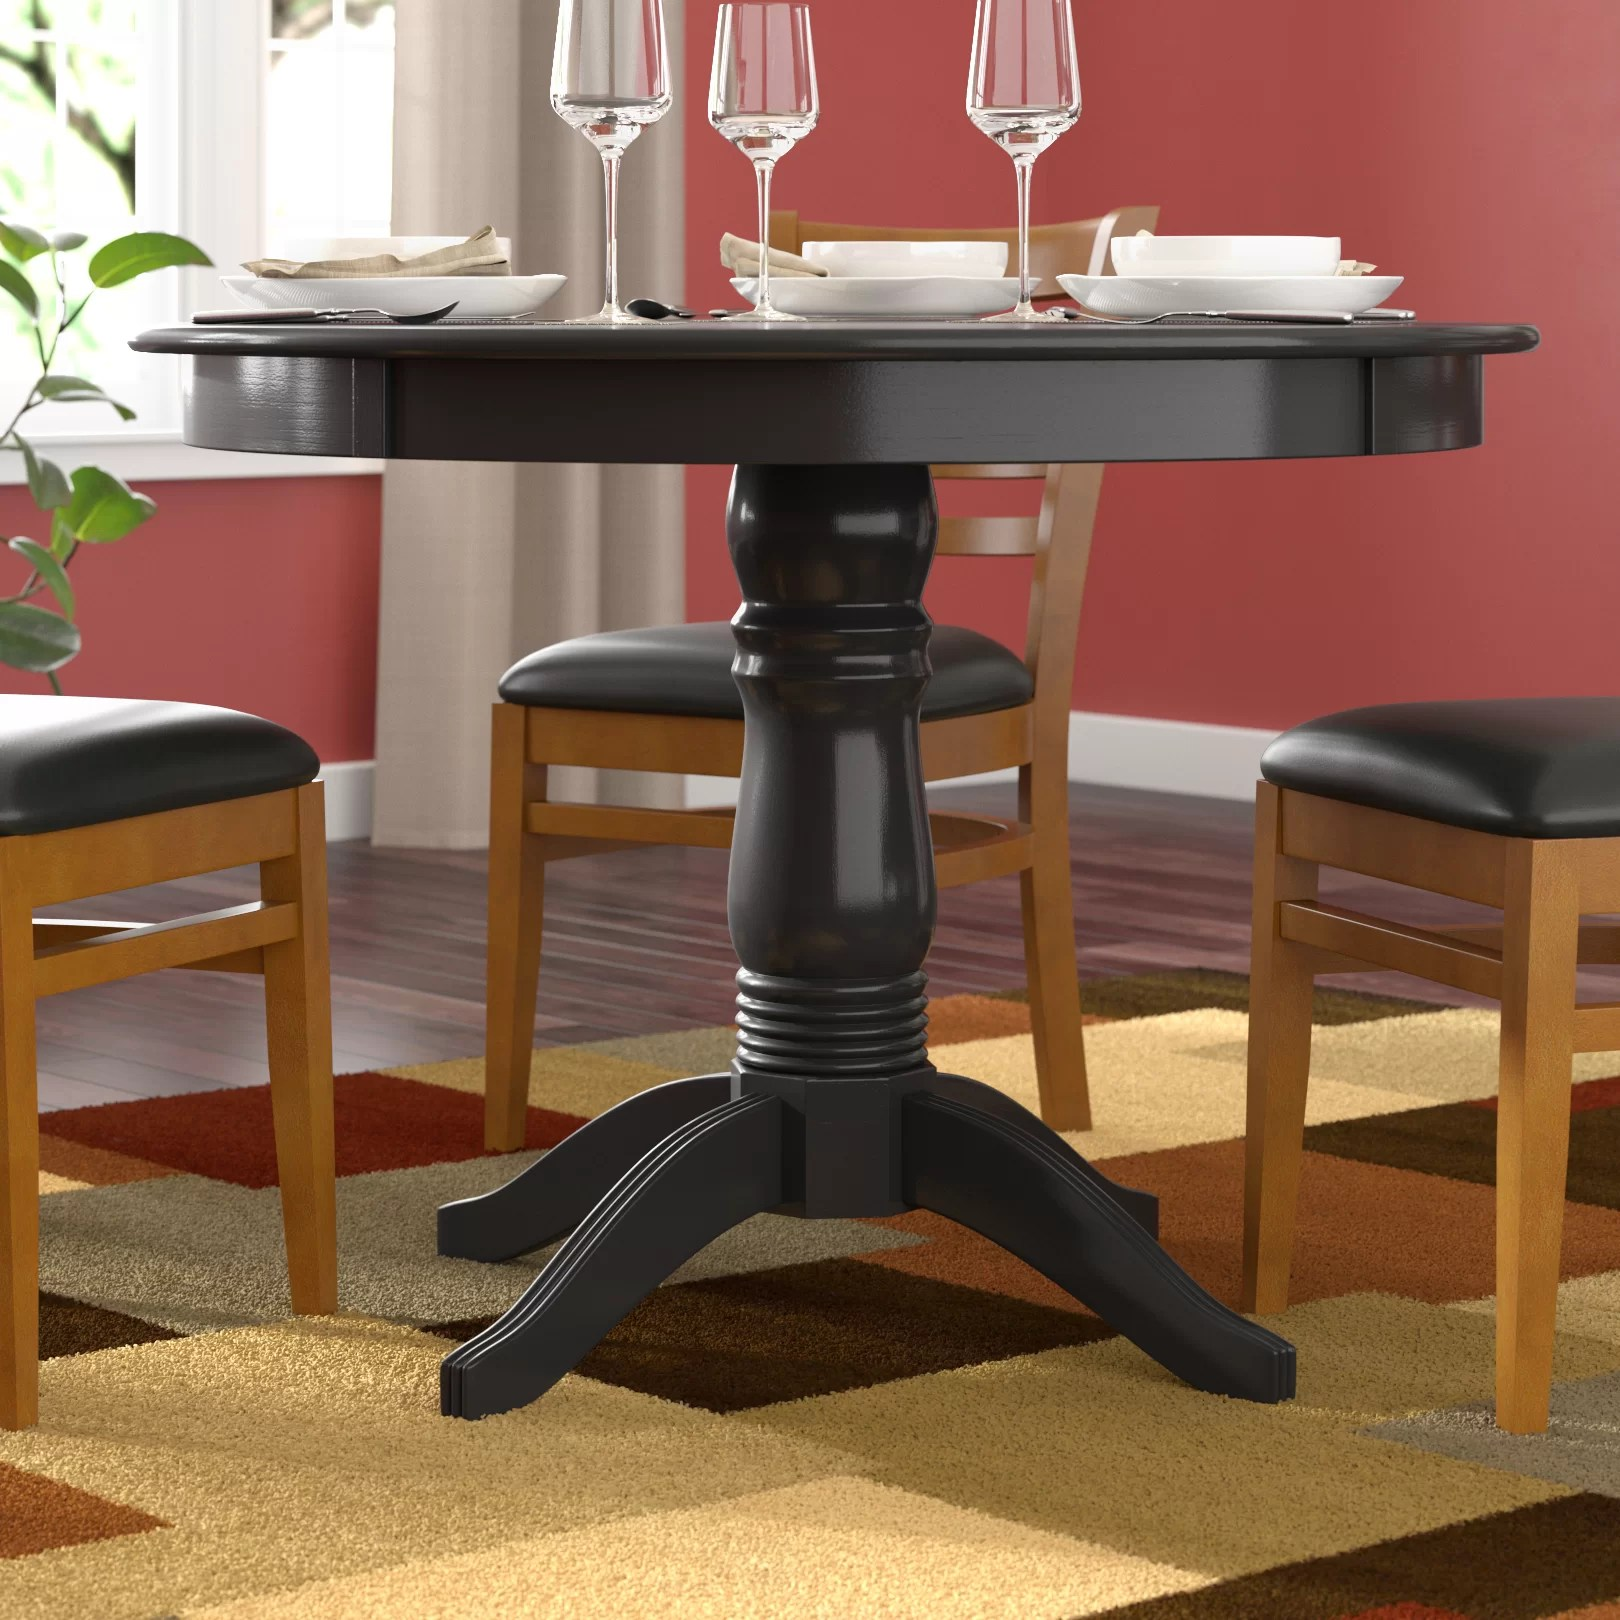 kitchen table base swag curtains wood dining wayfair quickview